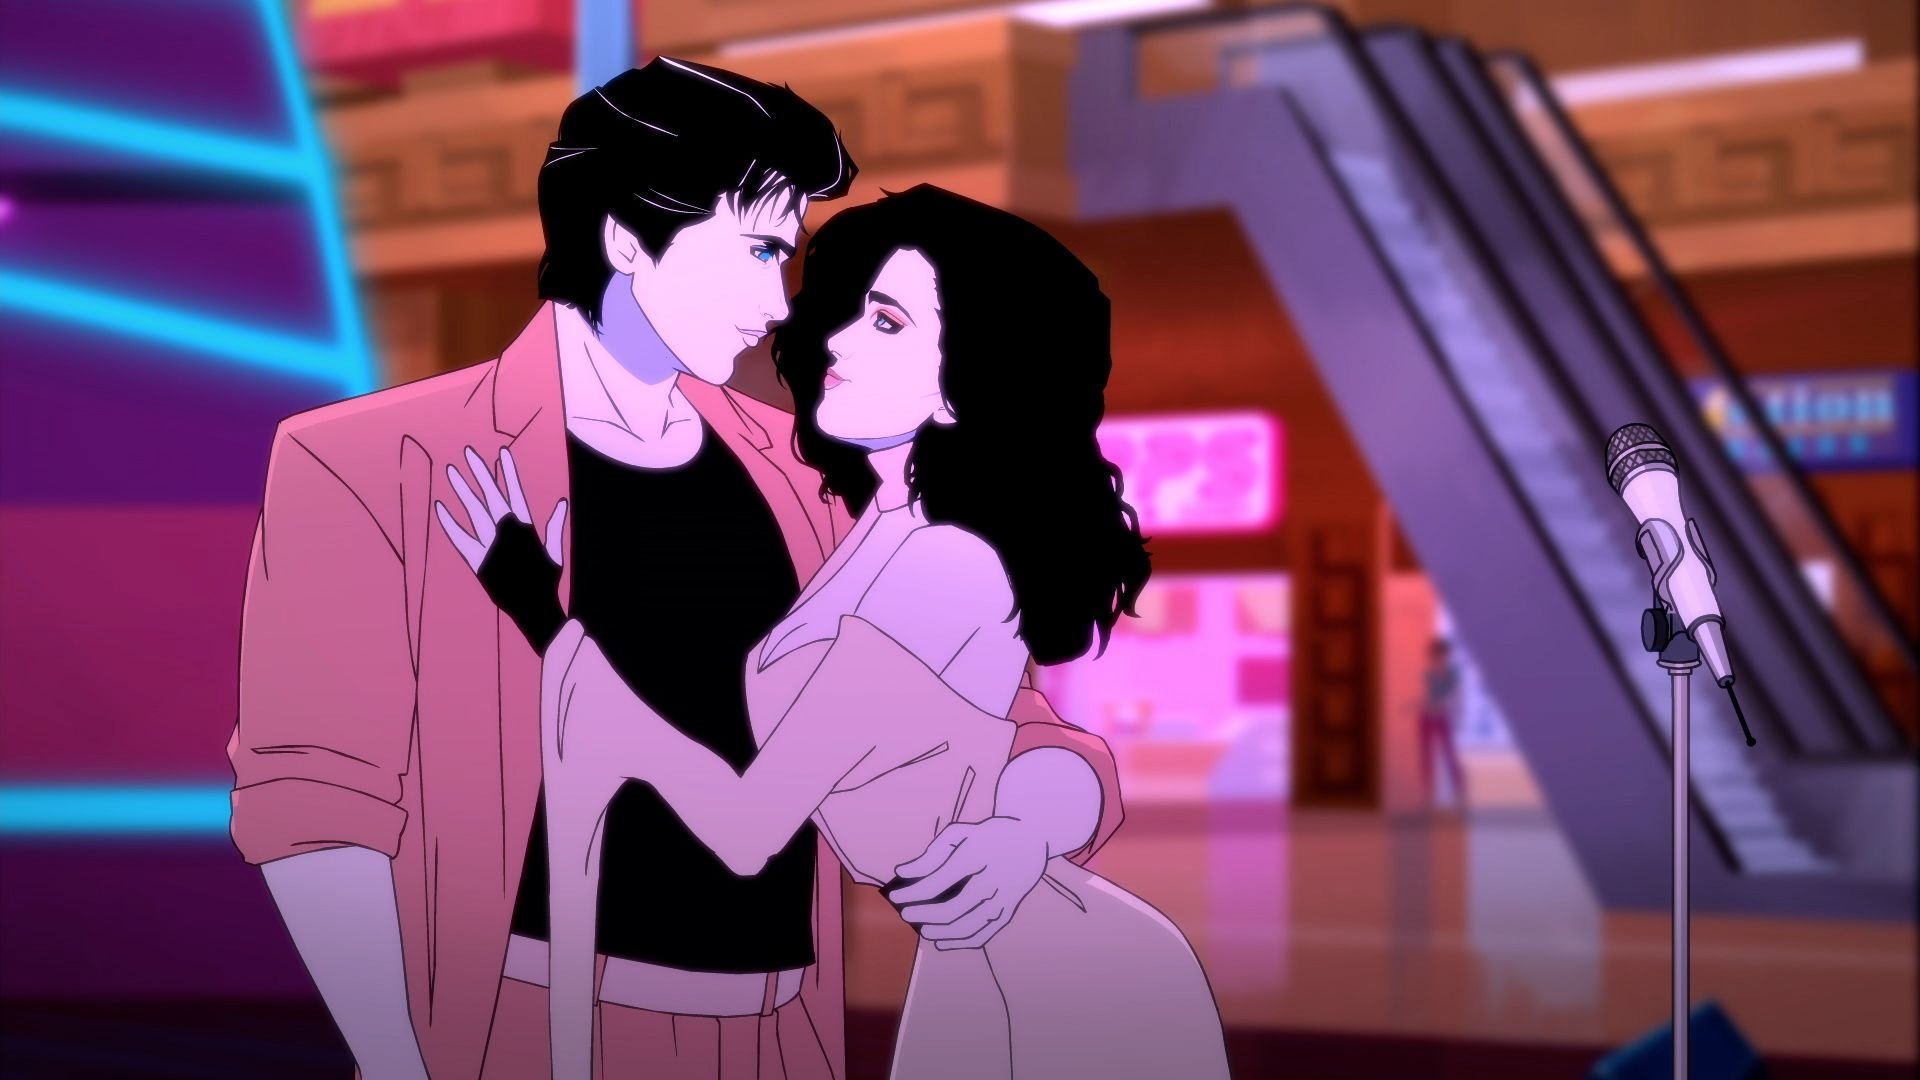 Mall Hath No Fury - Moonbeam City Episode - Season 1 - Ep. 101 ...